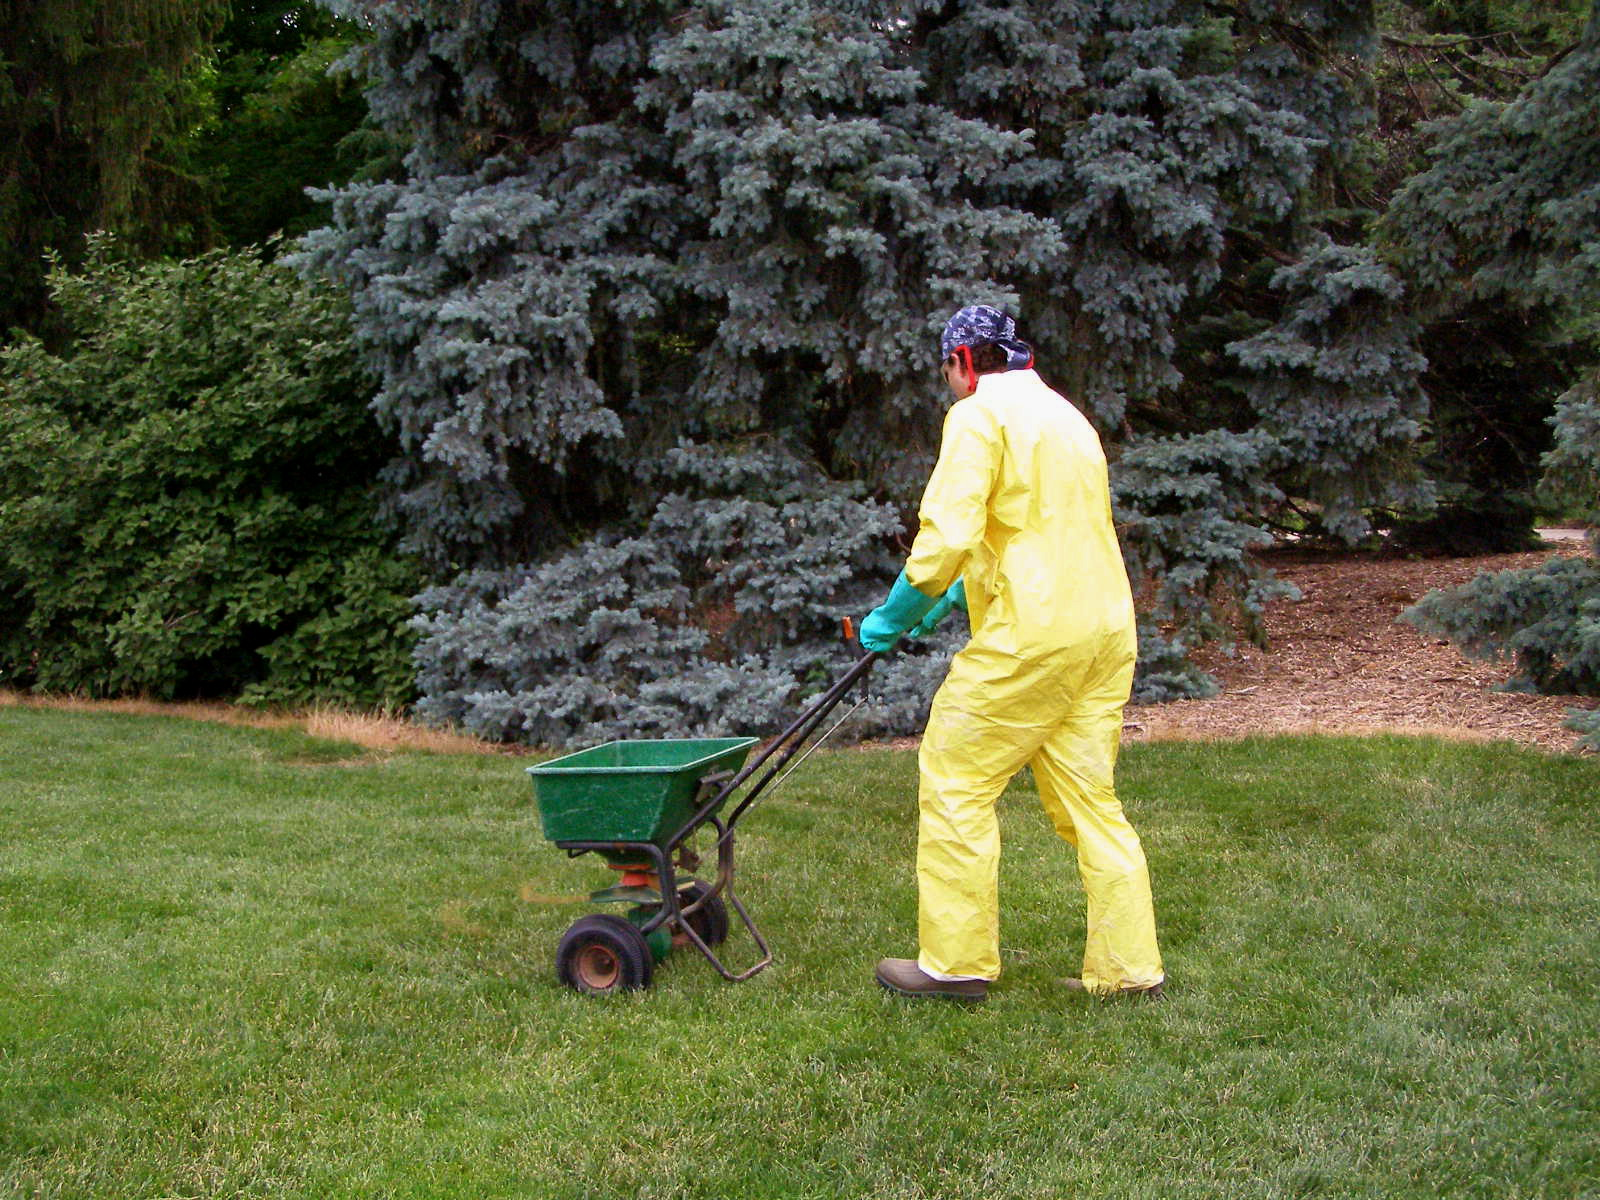 Lawncare professional spreading fertilizer in the correct PPE